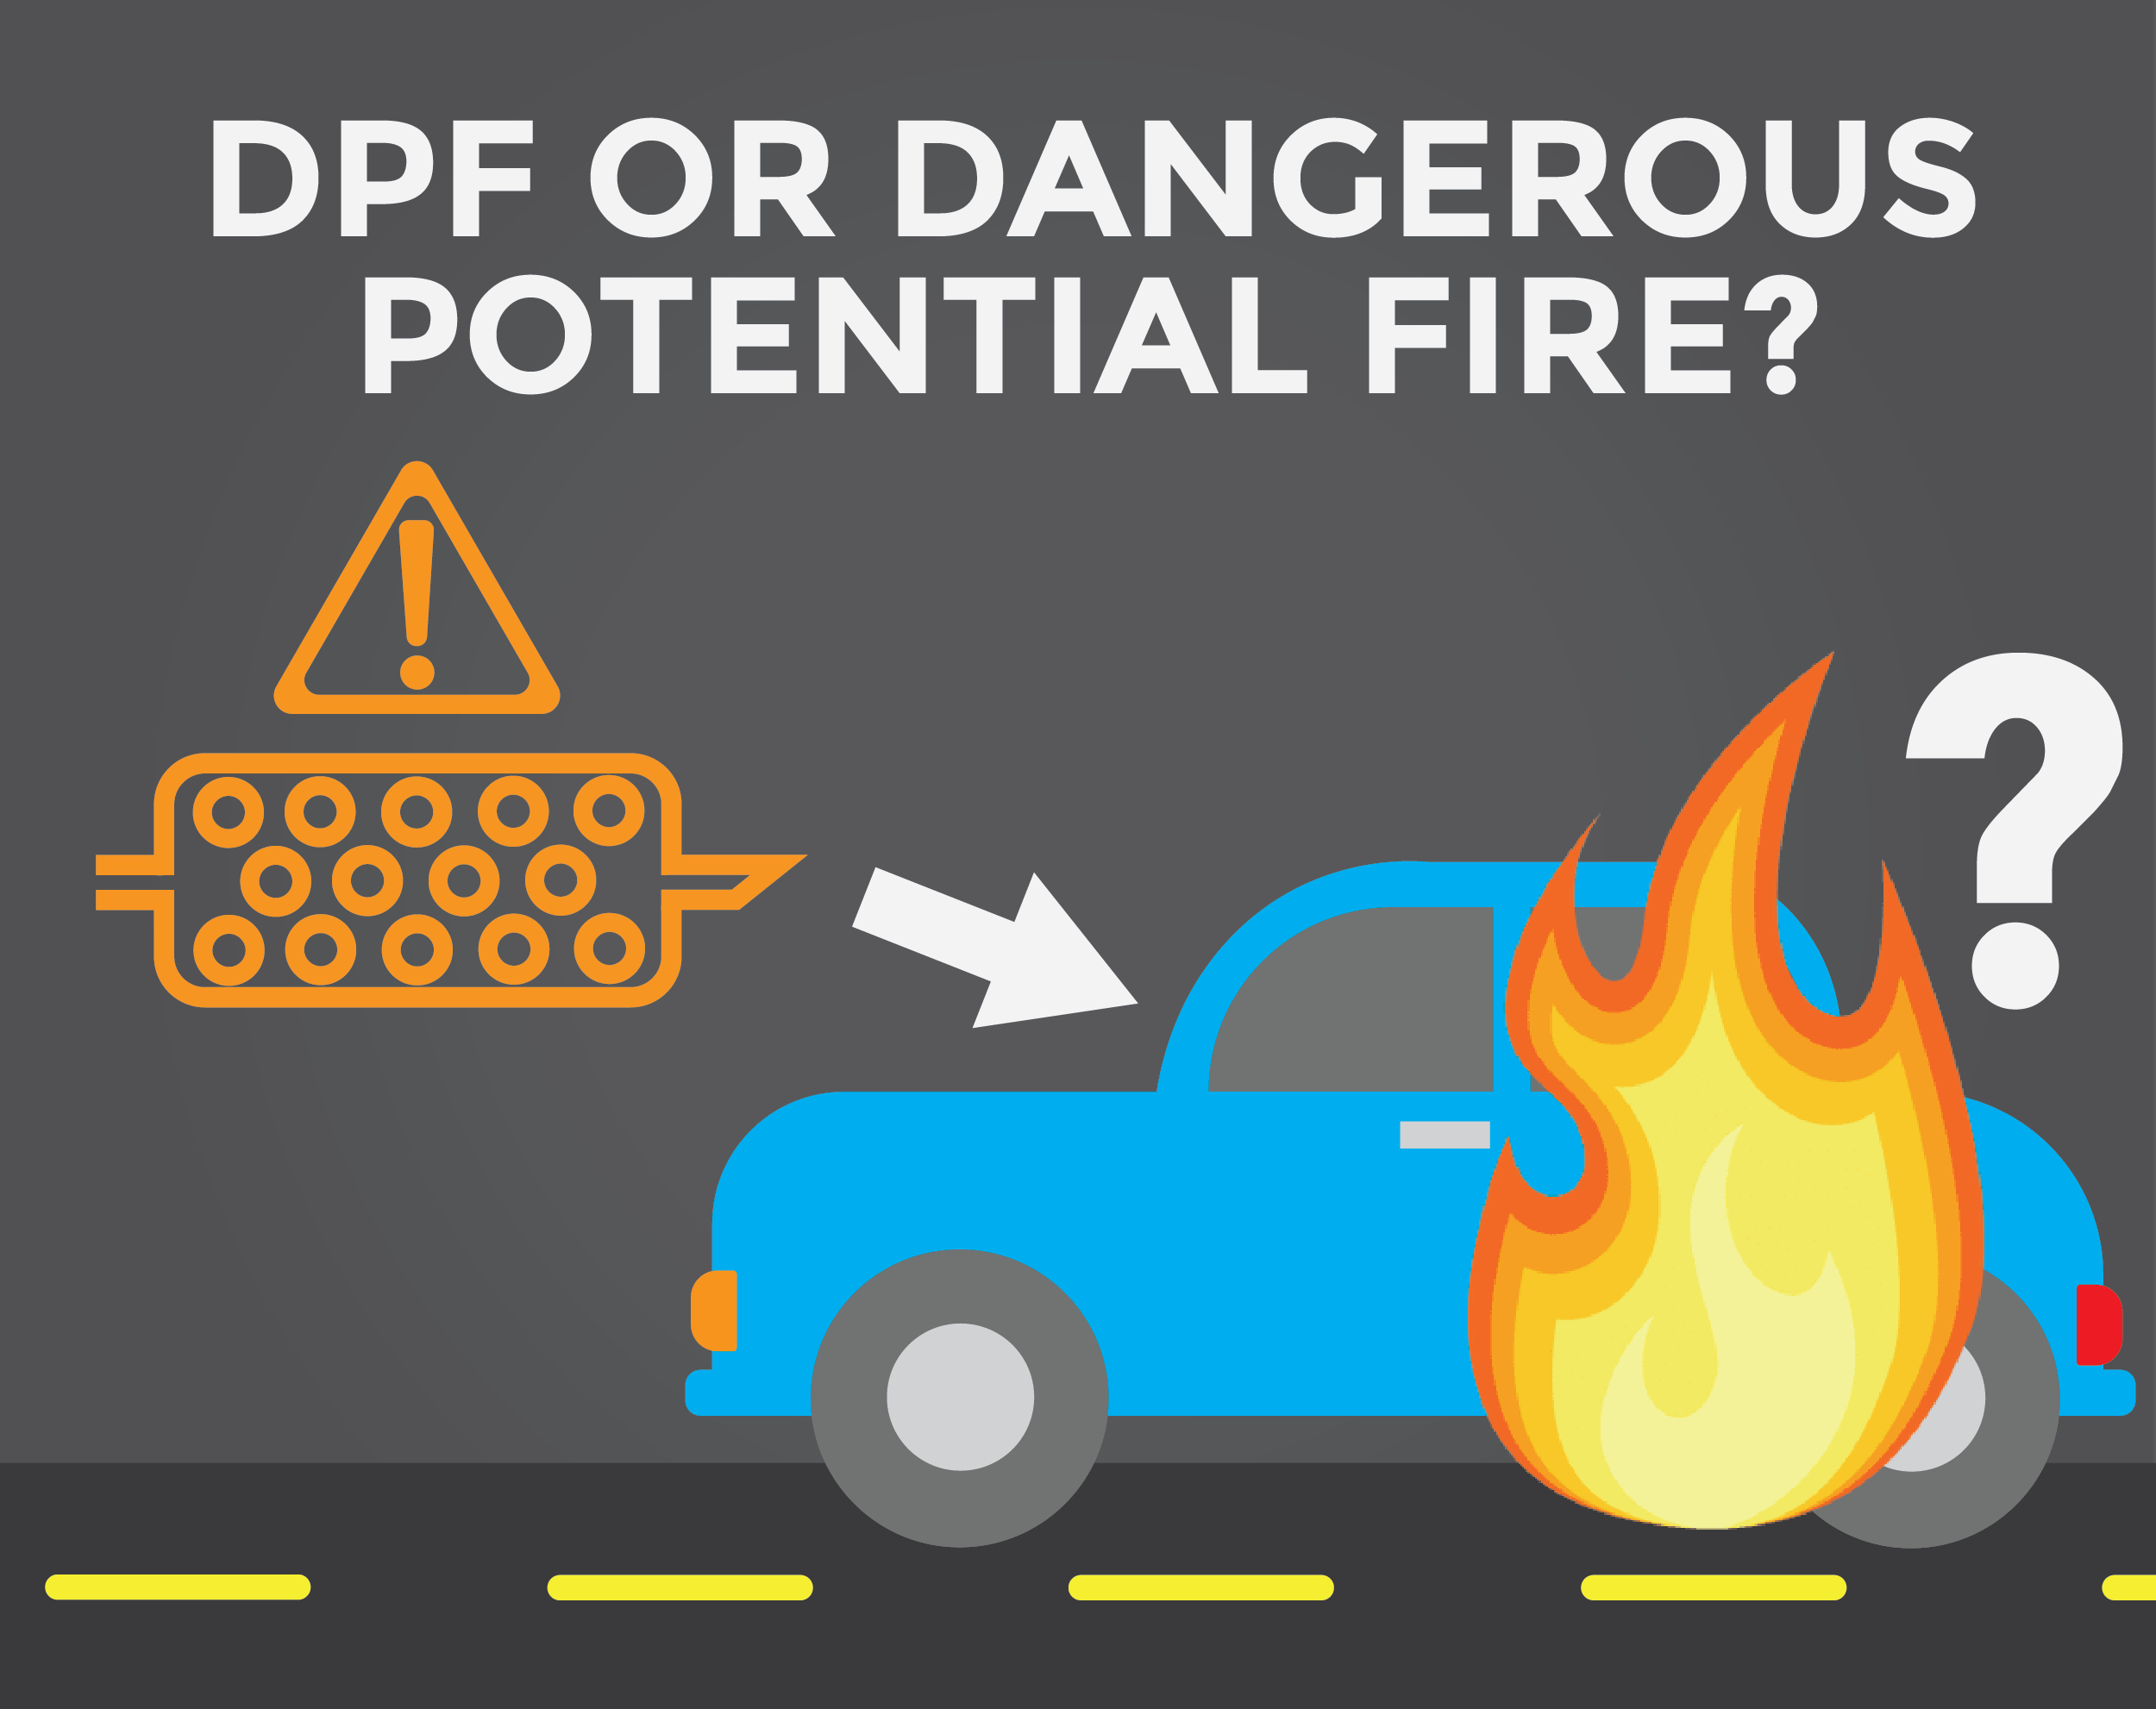 DPF or Dangerous Potential Fire image showing warning lights and a burning DPF filter under a car